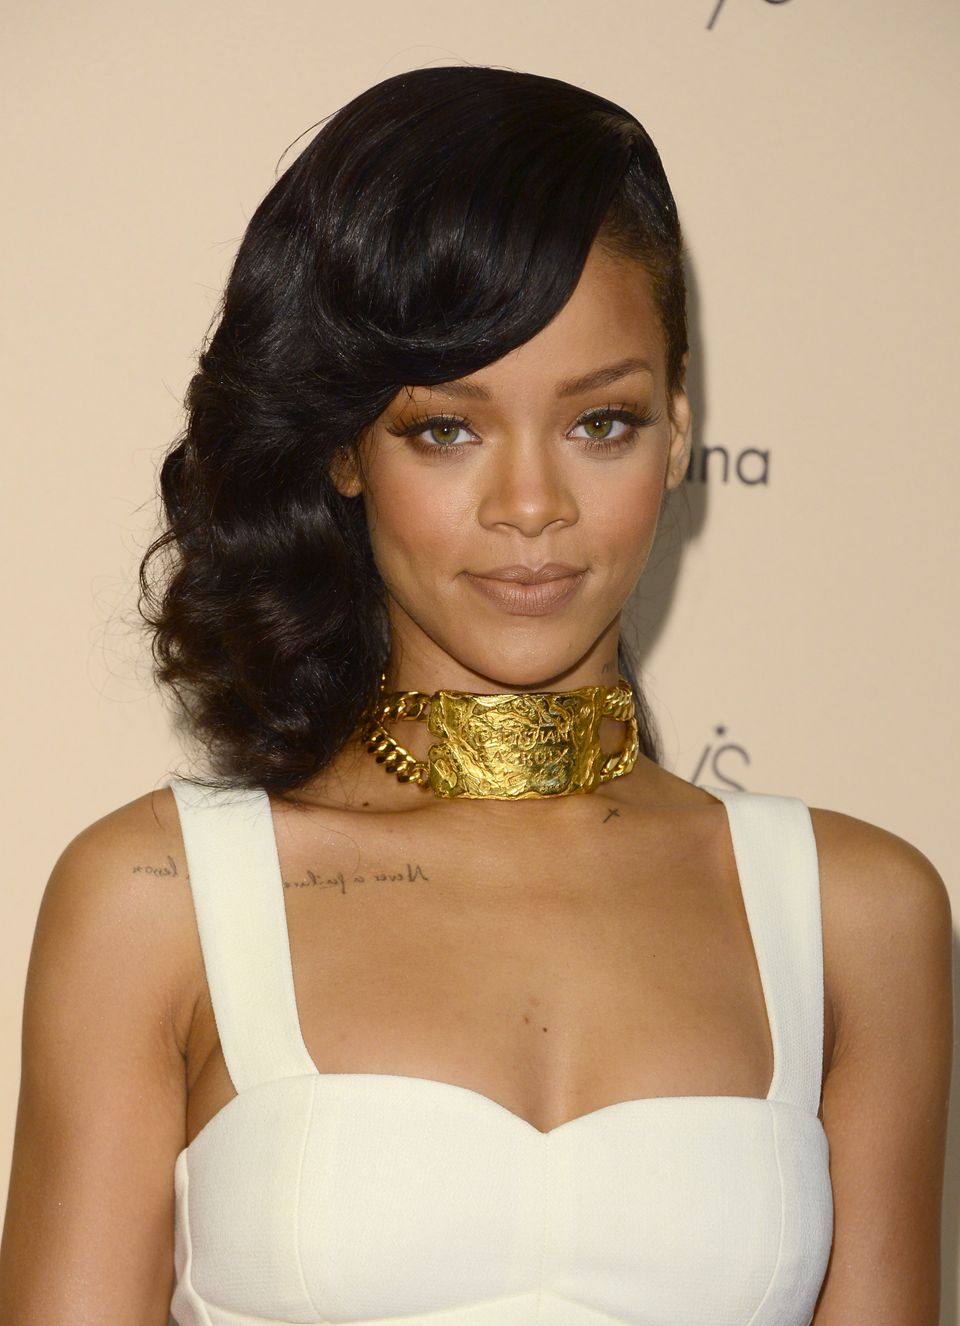 """""""He was the love of my life. The first love,"""" <a href=""""https://www.huffpost.com/entry/rihanna-forgives-still-loves-chris-brow"""